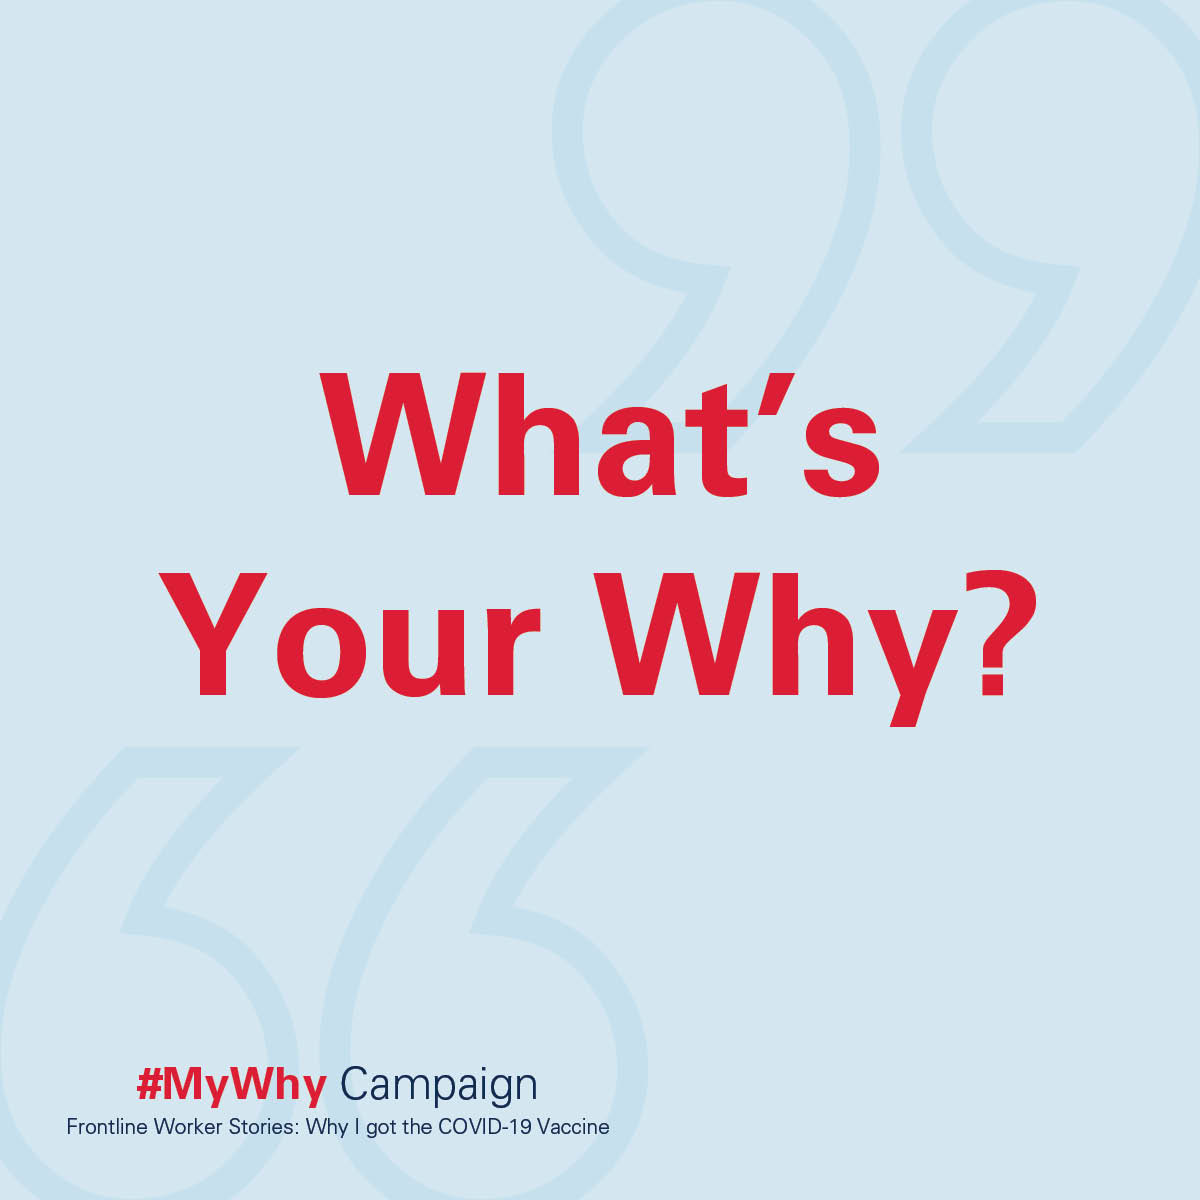 What's Your Why? #MyWhy Campaign